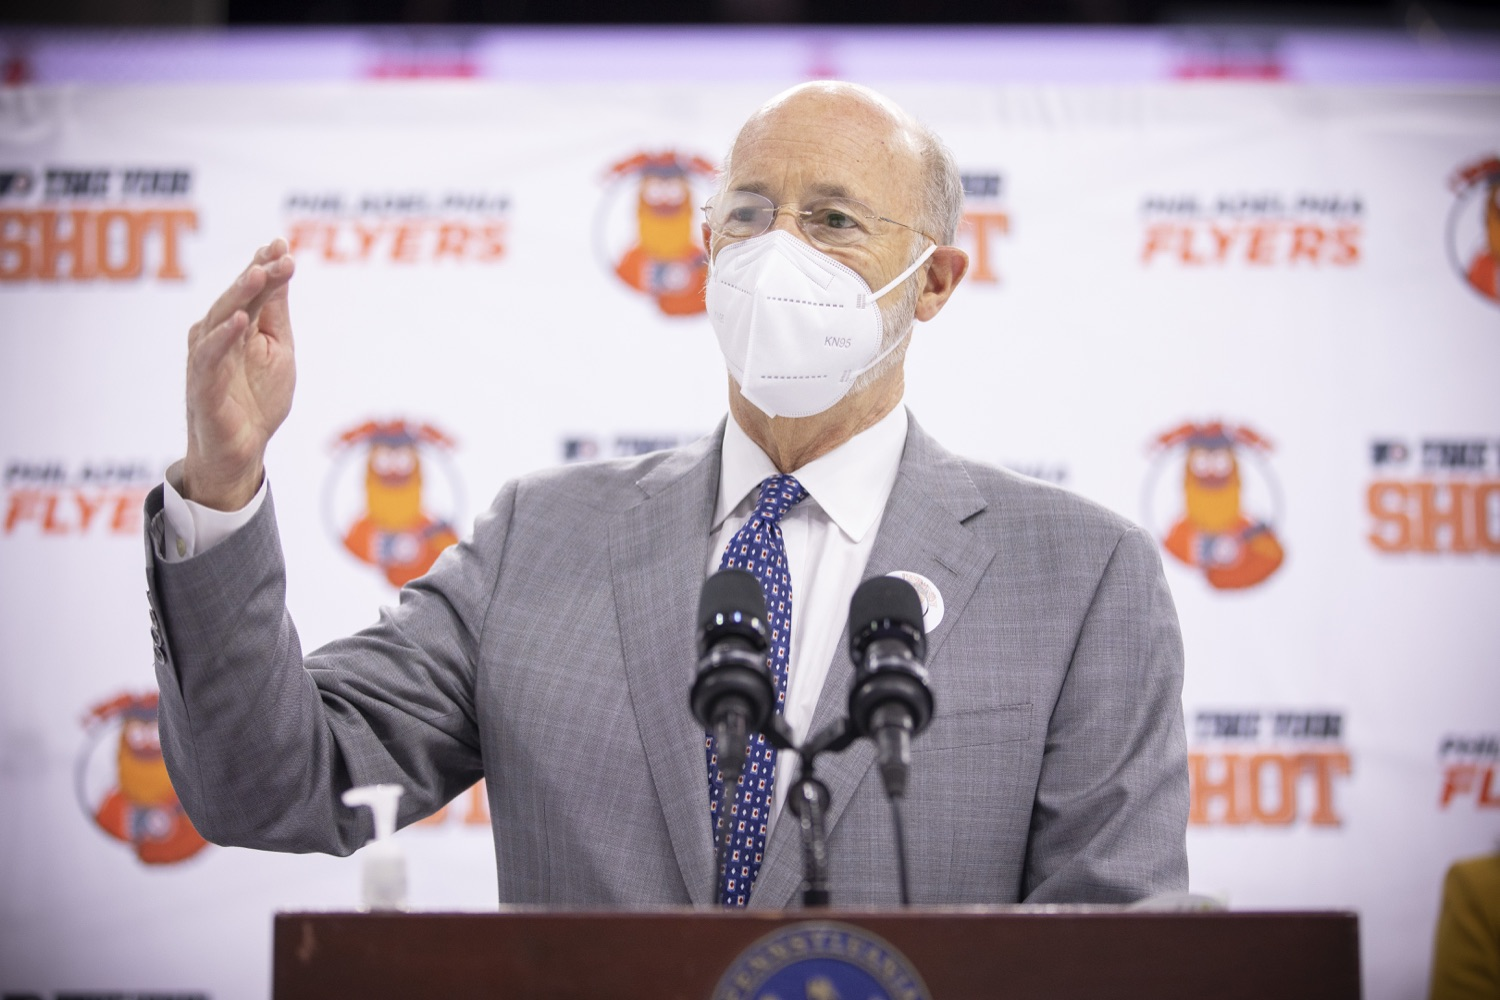 "<a href=""https://filesource.wostreaming.net/commonwealthofpa/photo/18727_gov_vaccines_dz_023.jpg"" target=""_blank"">⇣ Download Photo<br></a>Pennsylvania Governor Tom Wolf speaking with the press.   Governor Tom Wolf today visited the Philadelphia Flyers organization at the Wells Fargo Center in Philadelphia to discuss COVID-19 vaccine efforts in Pennsylvania. The Flyers recently launched a comprehensive COVID-19 vaccine campaign, Take Your Shot, encouraging Pennsylvanians to get vaccinated.  Philadelphia, PA  MAY 3, 2021"